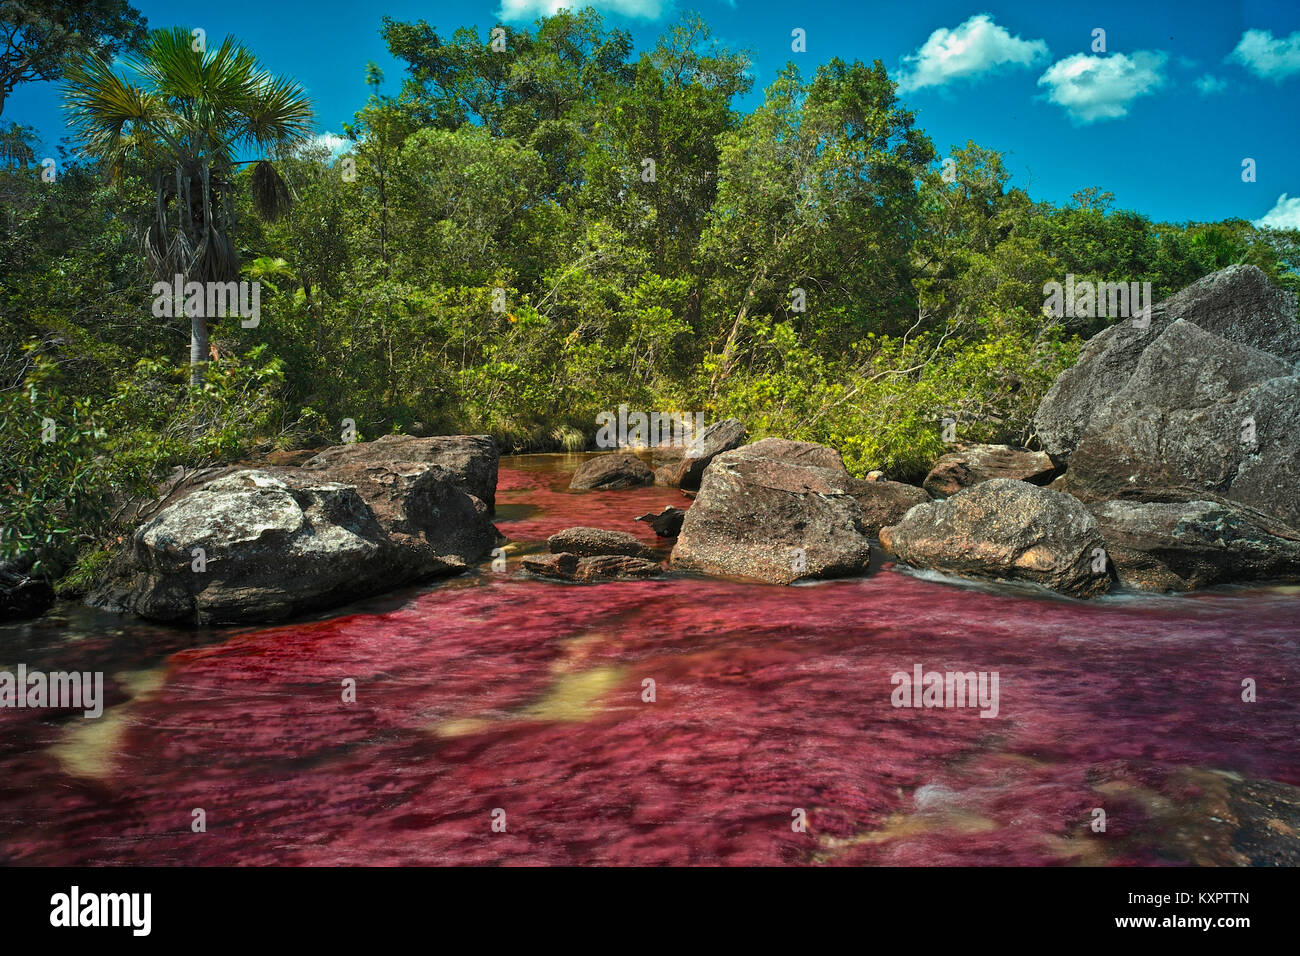 Colorful endemic freshwater red plants known as macarenia clavigera create colorful natural tapestries at the Red - Stock Image